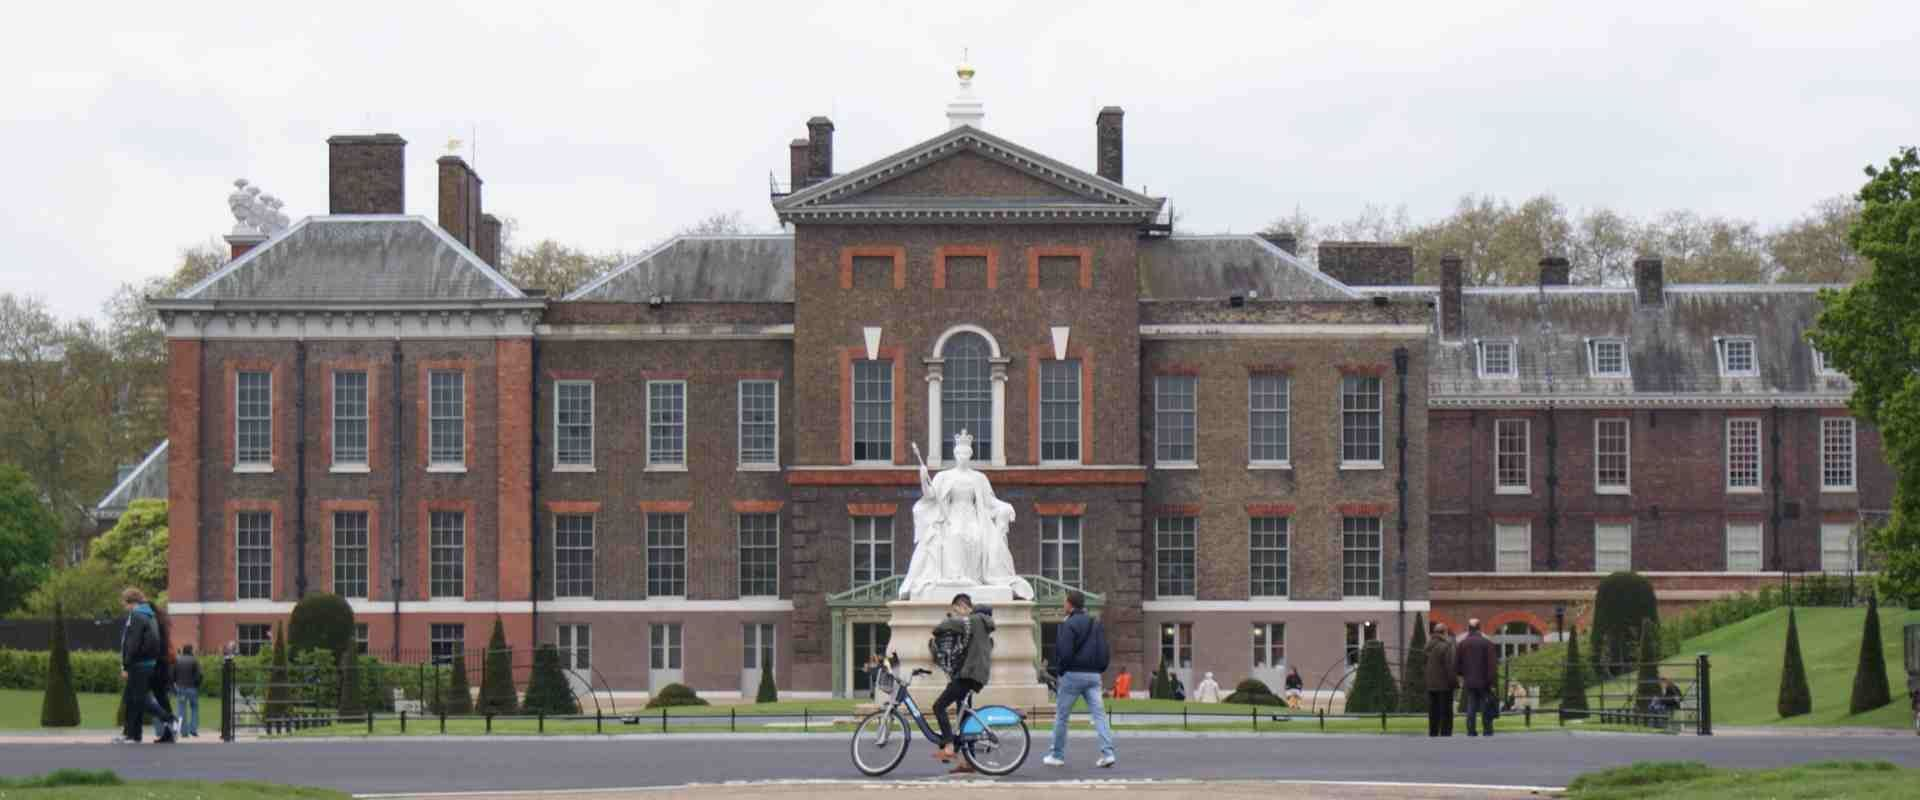 The Ultimate Guide To Visiting Kensington Palace